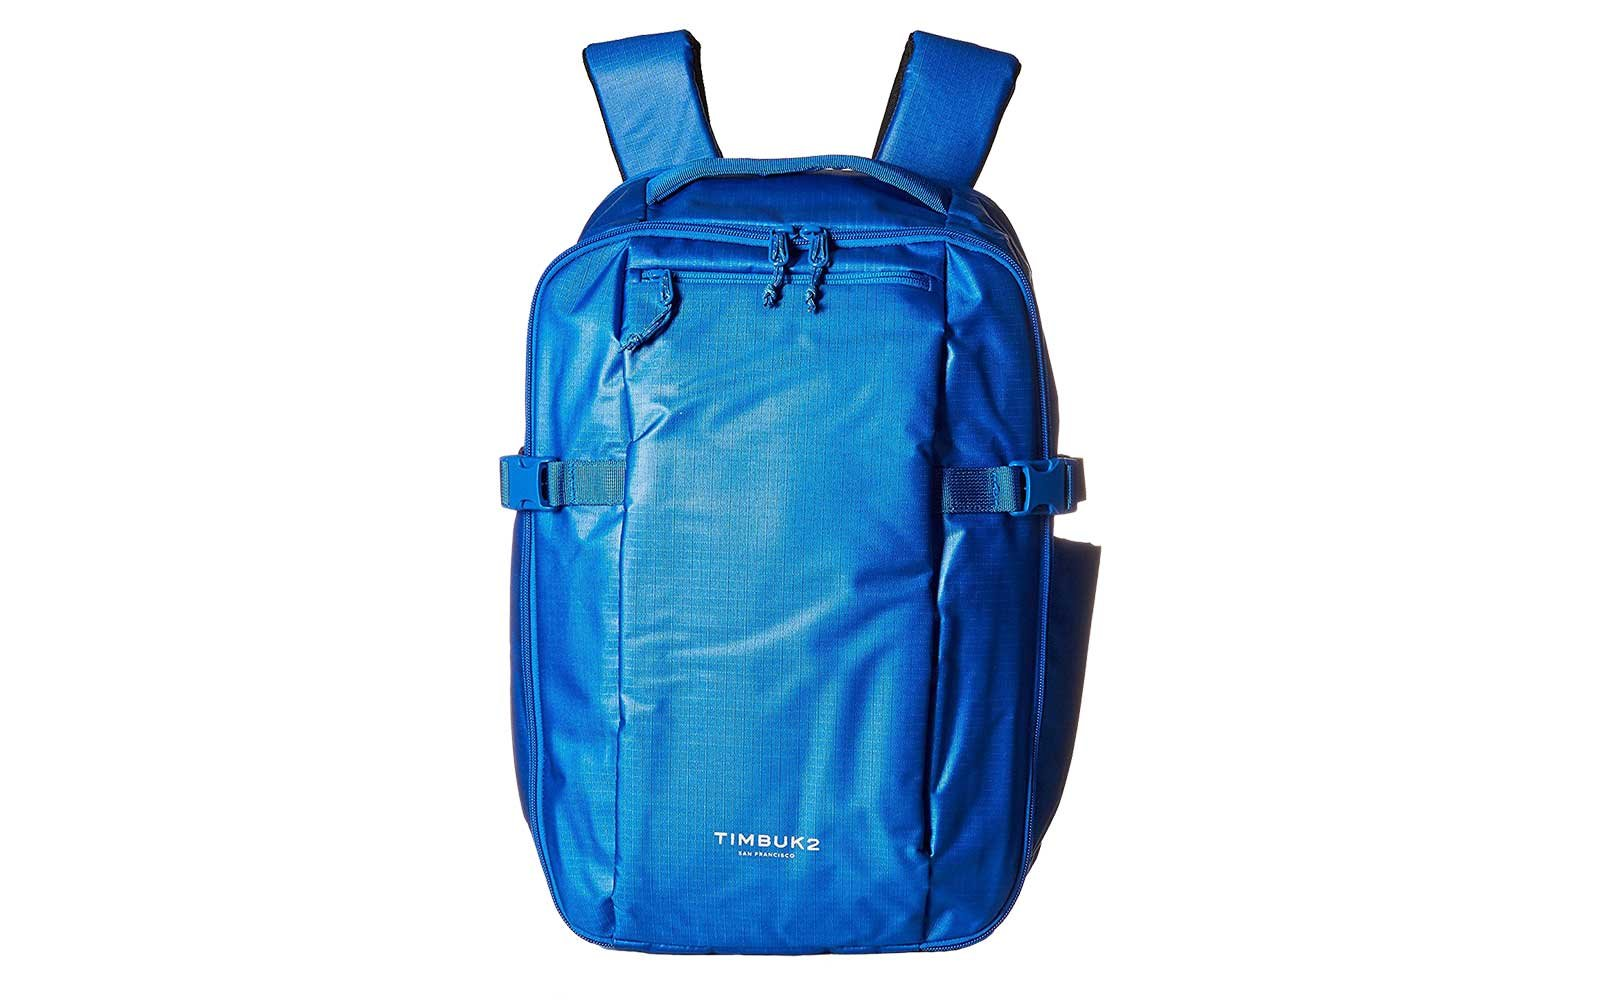 Lightweight backpack from Timbuk2